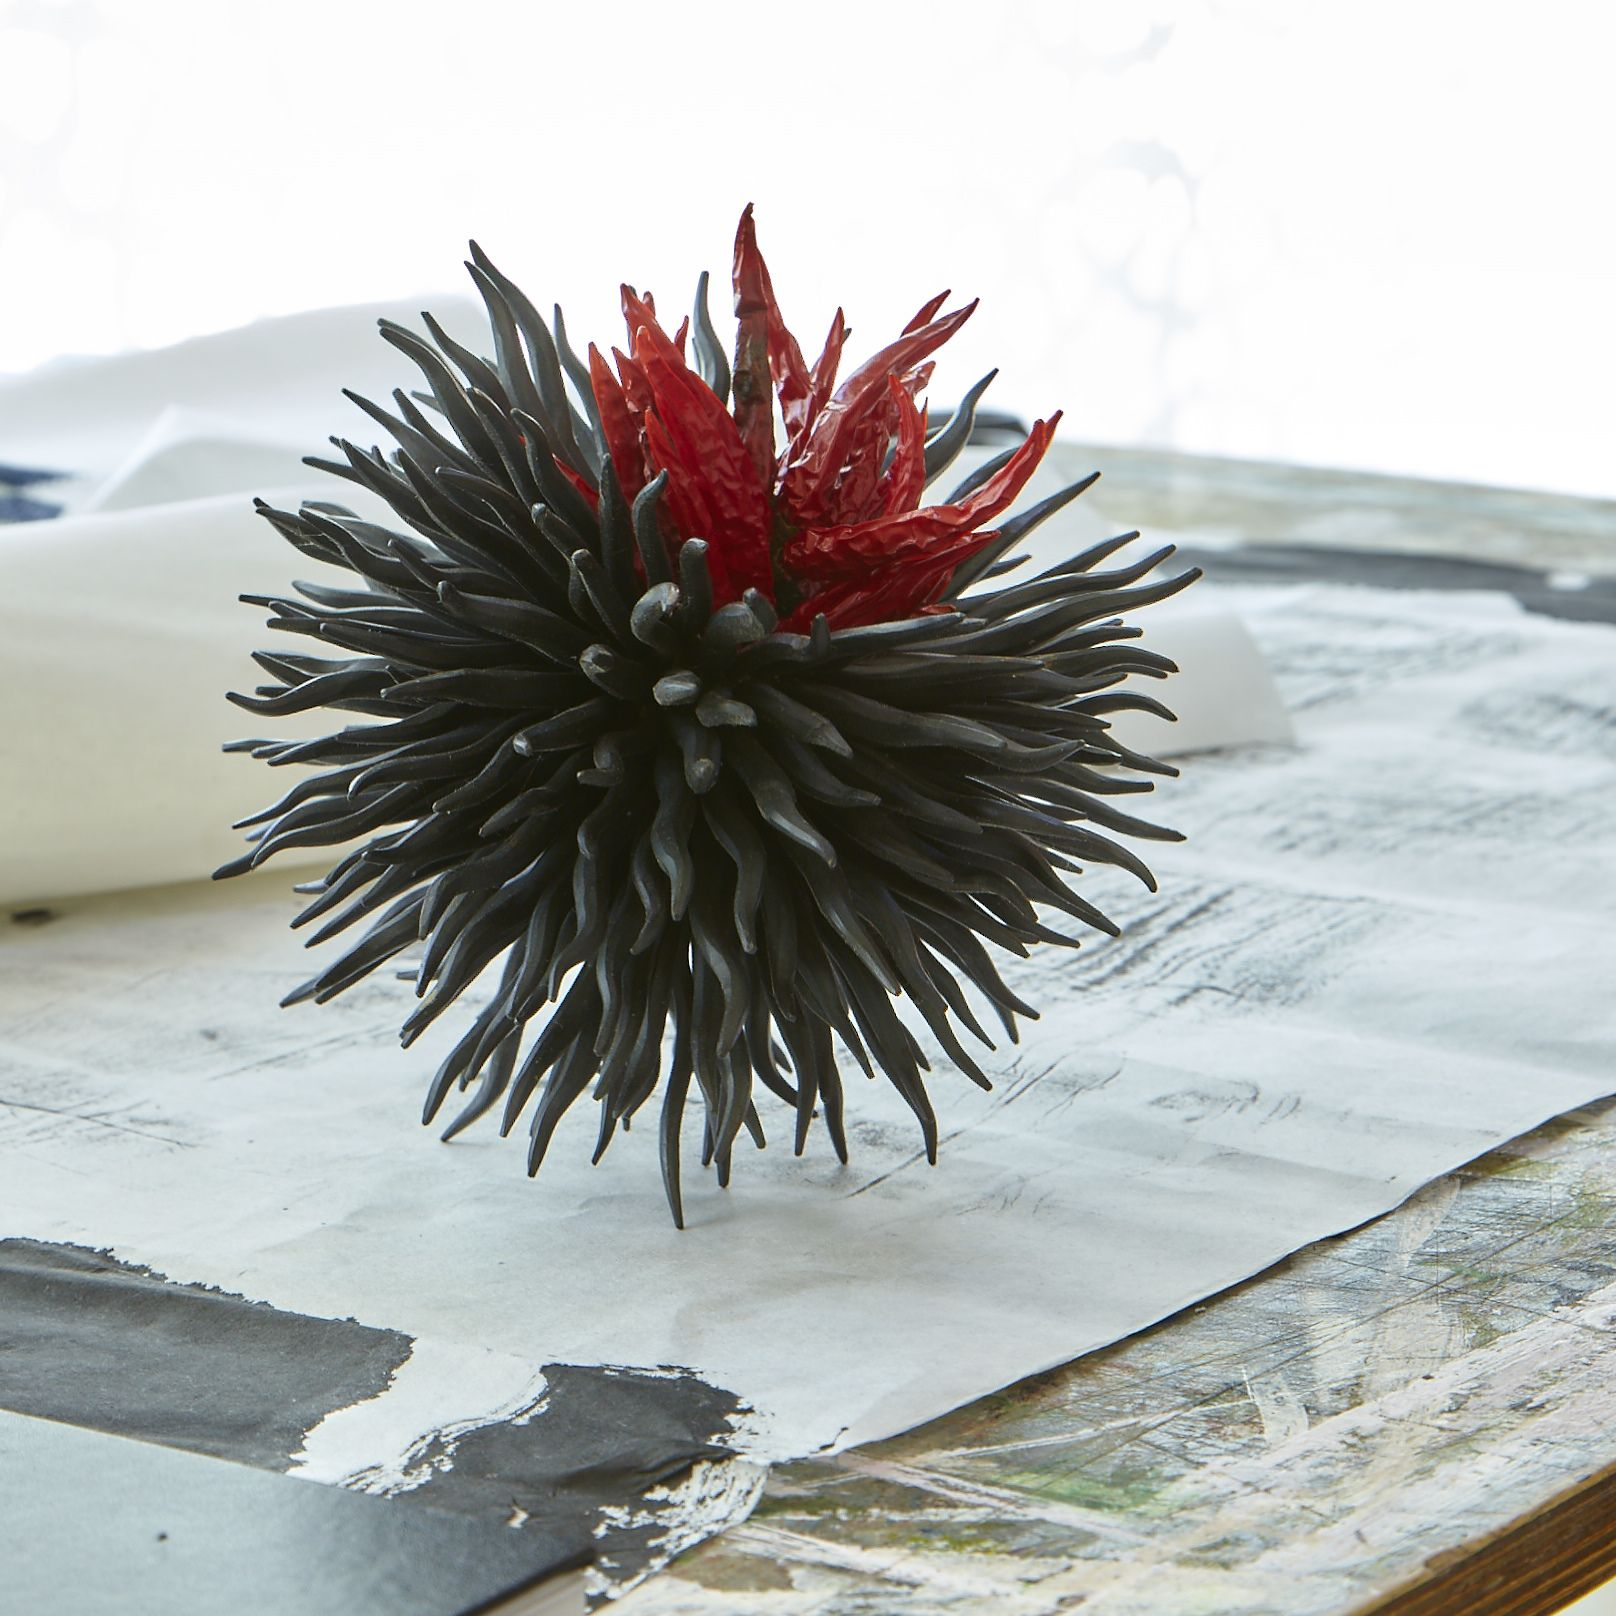 Junko Mori: Organism, 2006 Forged mild steel, wax coated with dried plants  http://no9thompson.com/news/post/3/introducing-origami